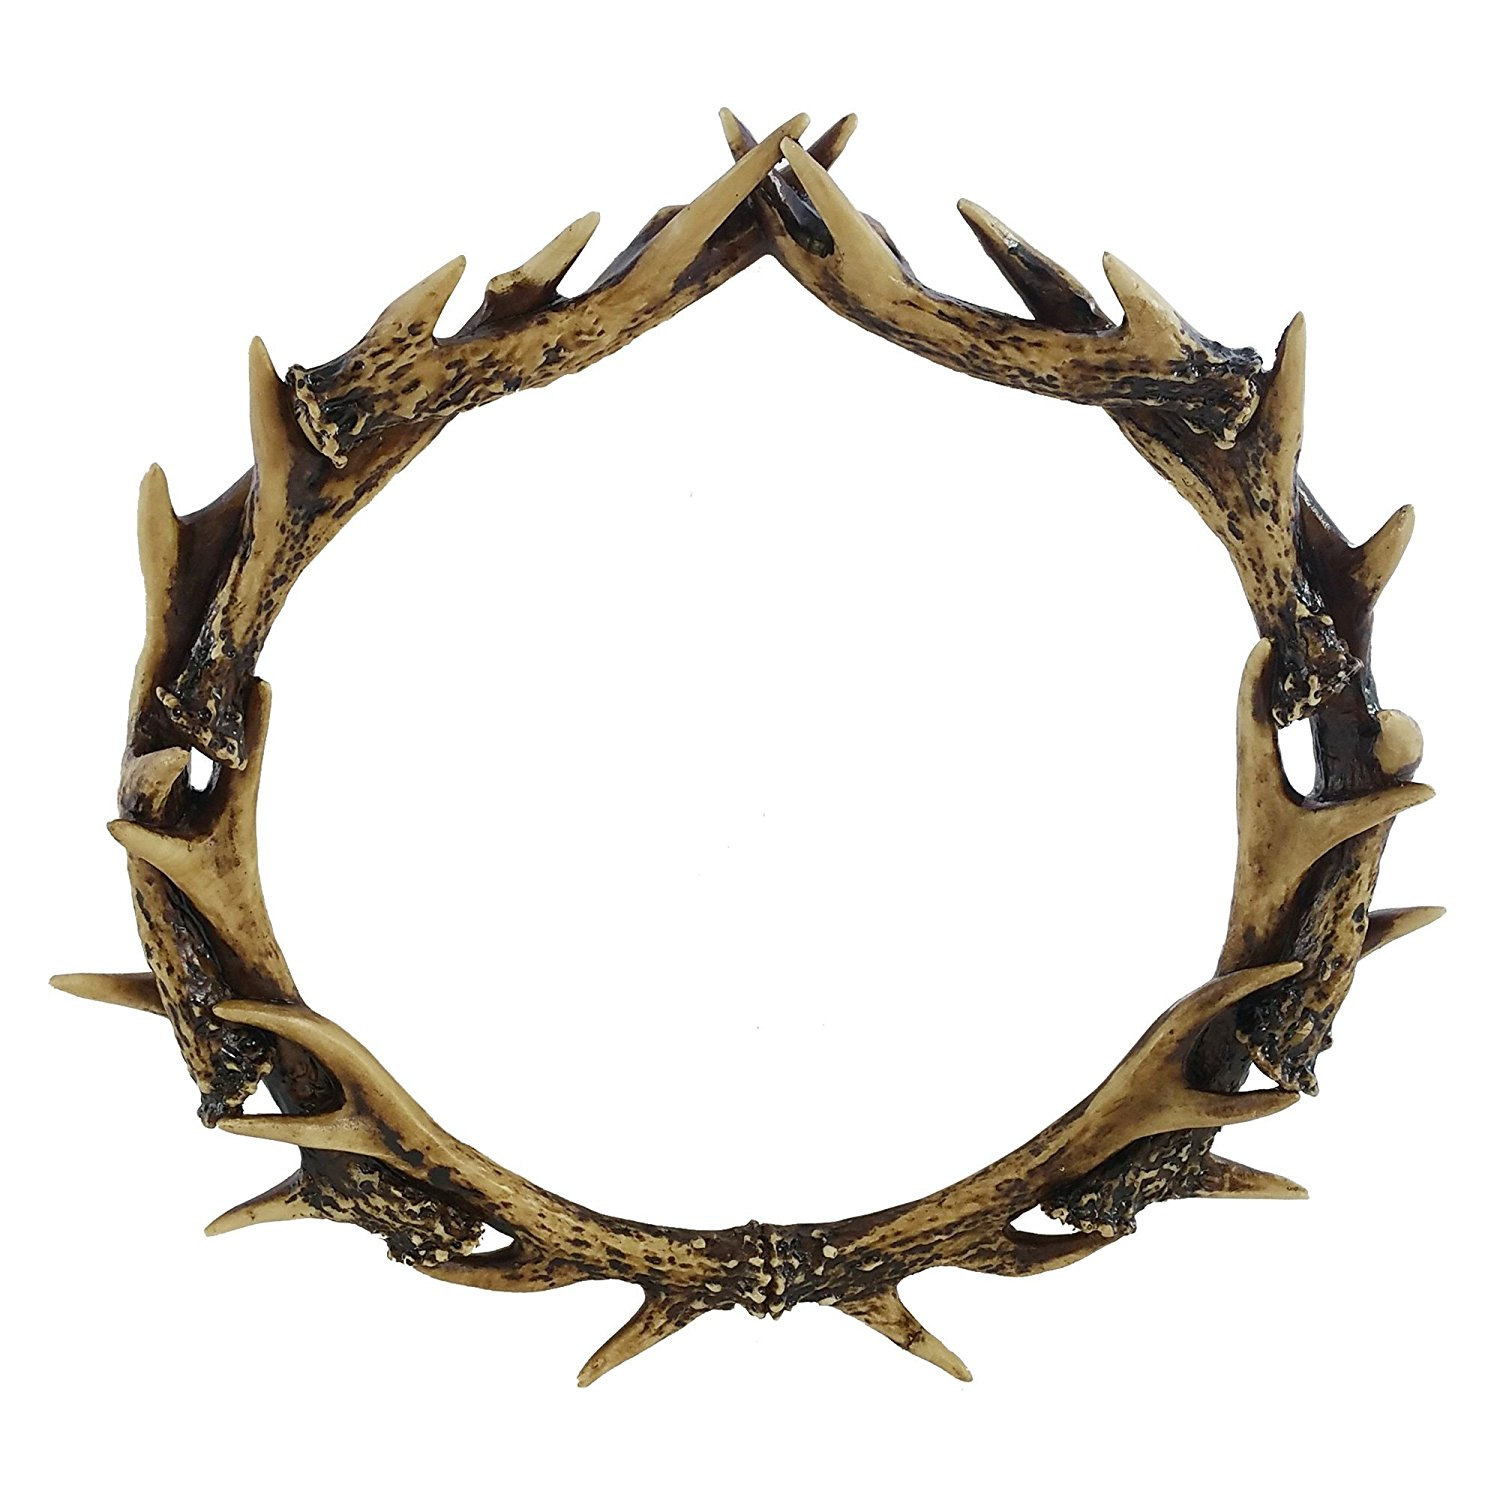 "Pine Ridge Rustic 12"" Deer Stag Antler Wreath Antler Shed Faux Taxidermy Home Decor"